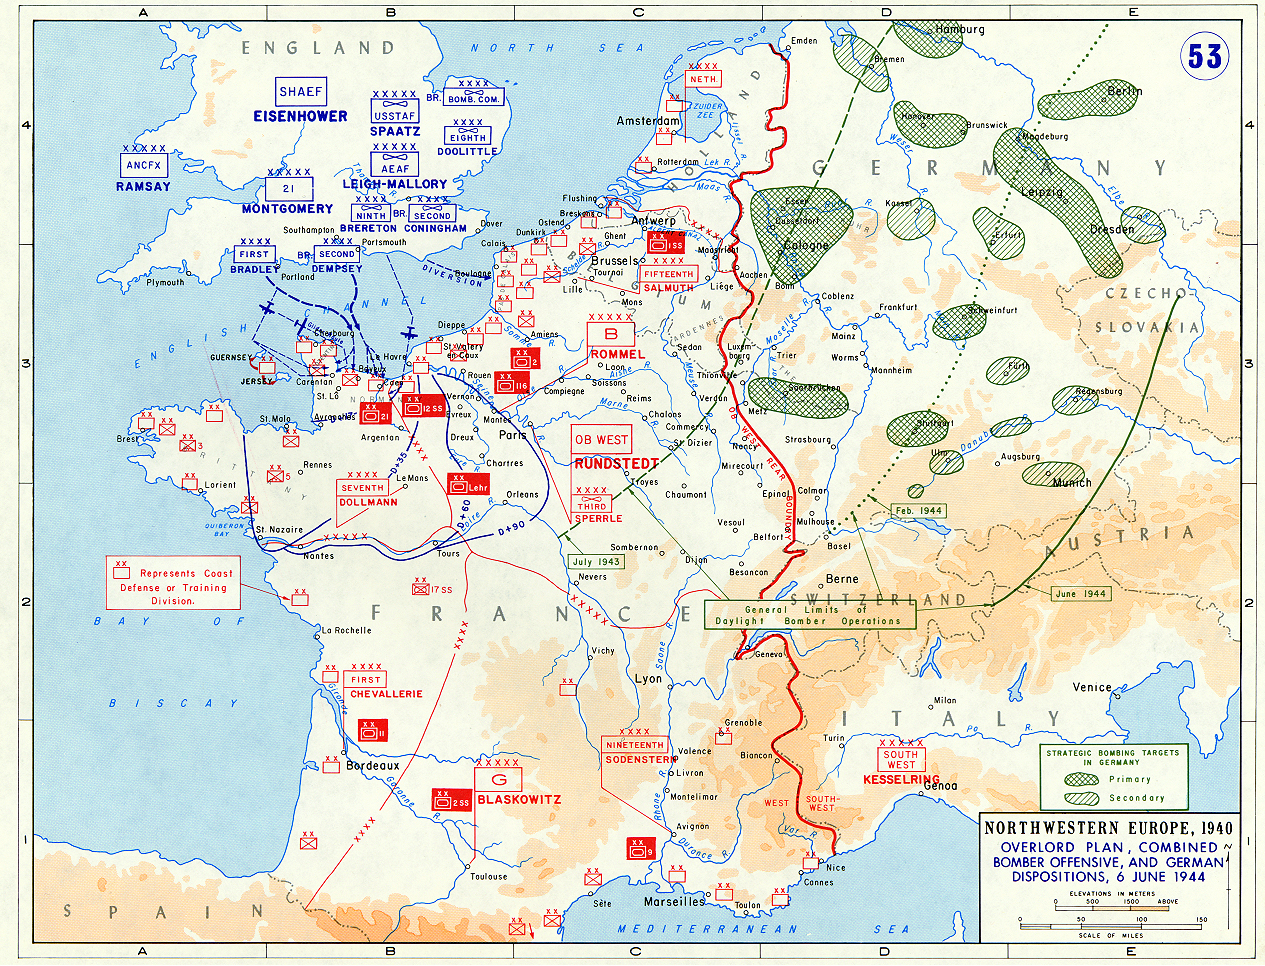 normandy beach jewish single women Omaha beach: v corps with some infantry wading through the flooded fields rather than travelling on the single road britain's secret women in france.